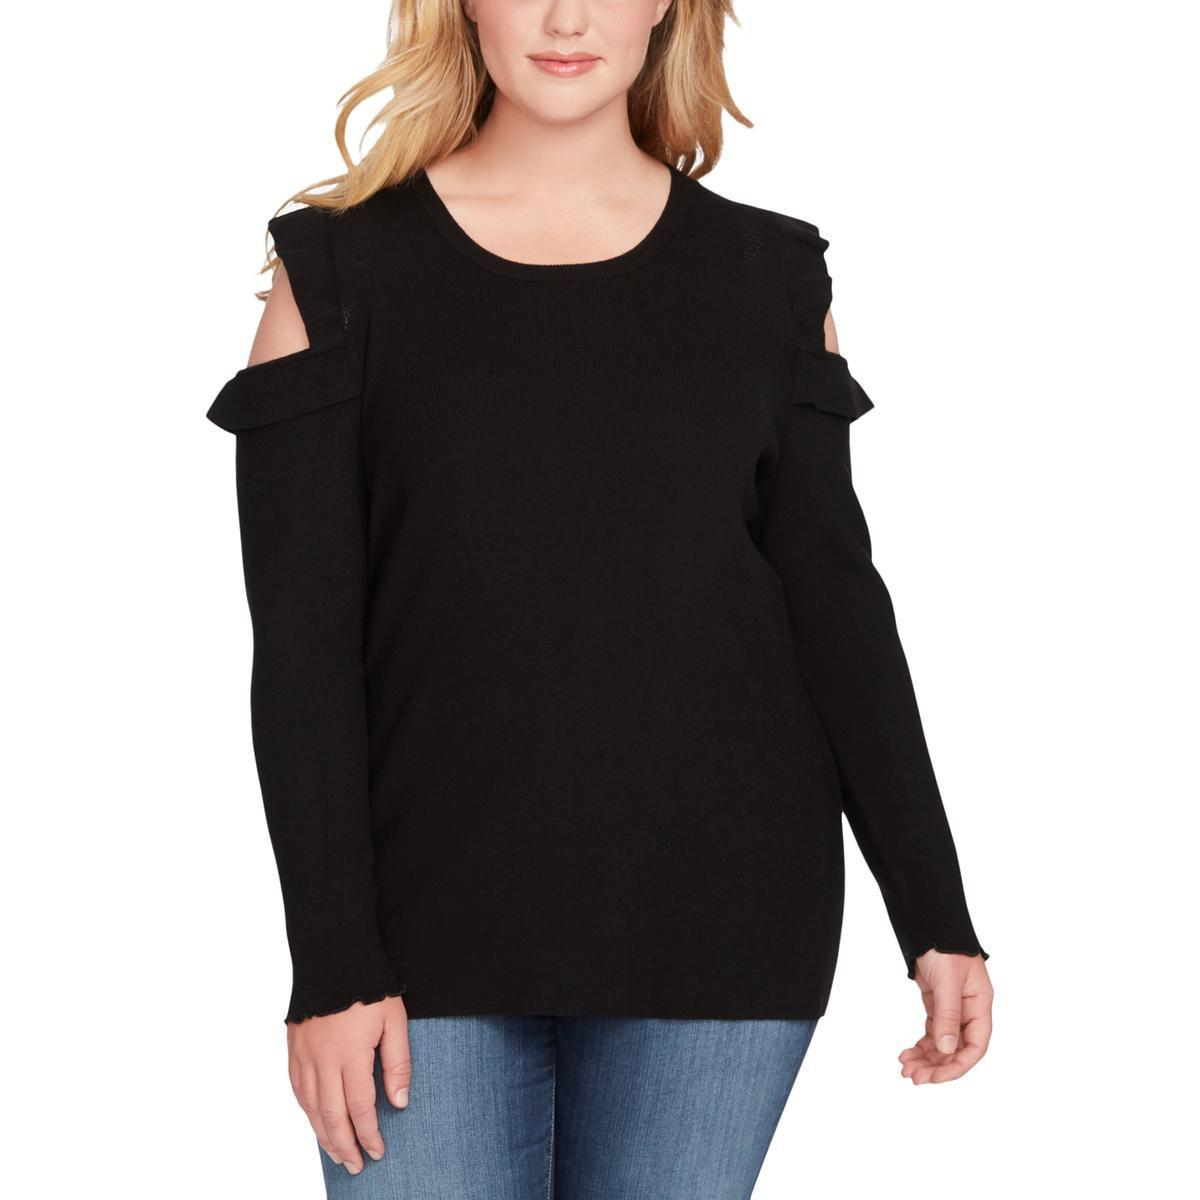 cb1d66b3e31 Jessica Simpson. Black Womens Plus Amenta Cold Shoulder Long Sleeves  Pullover Sweater